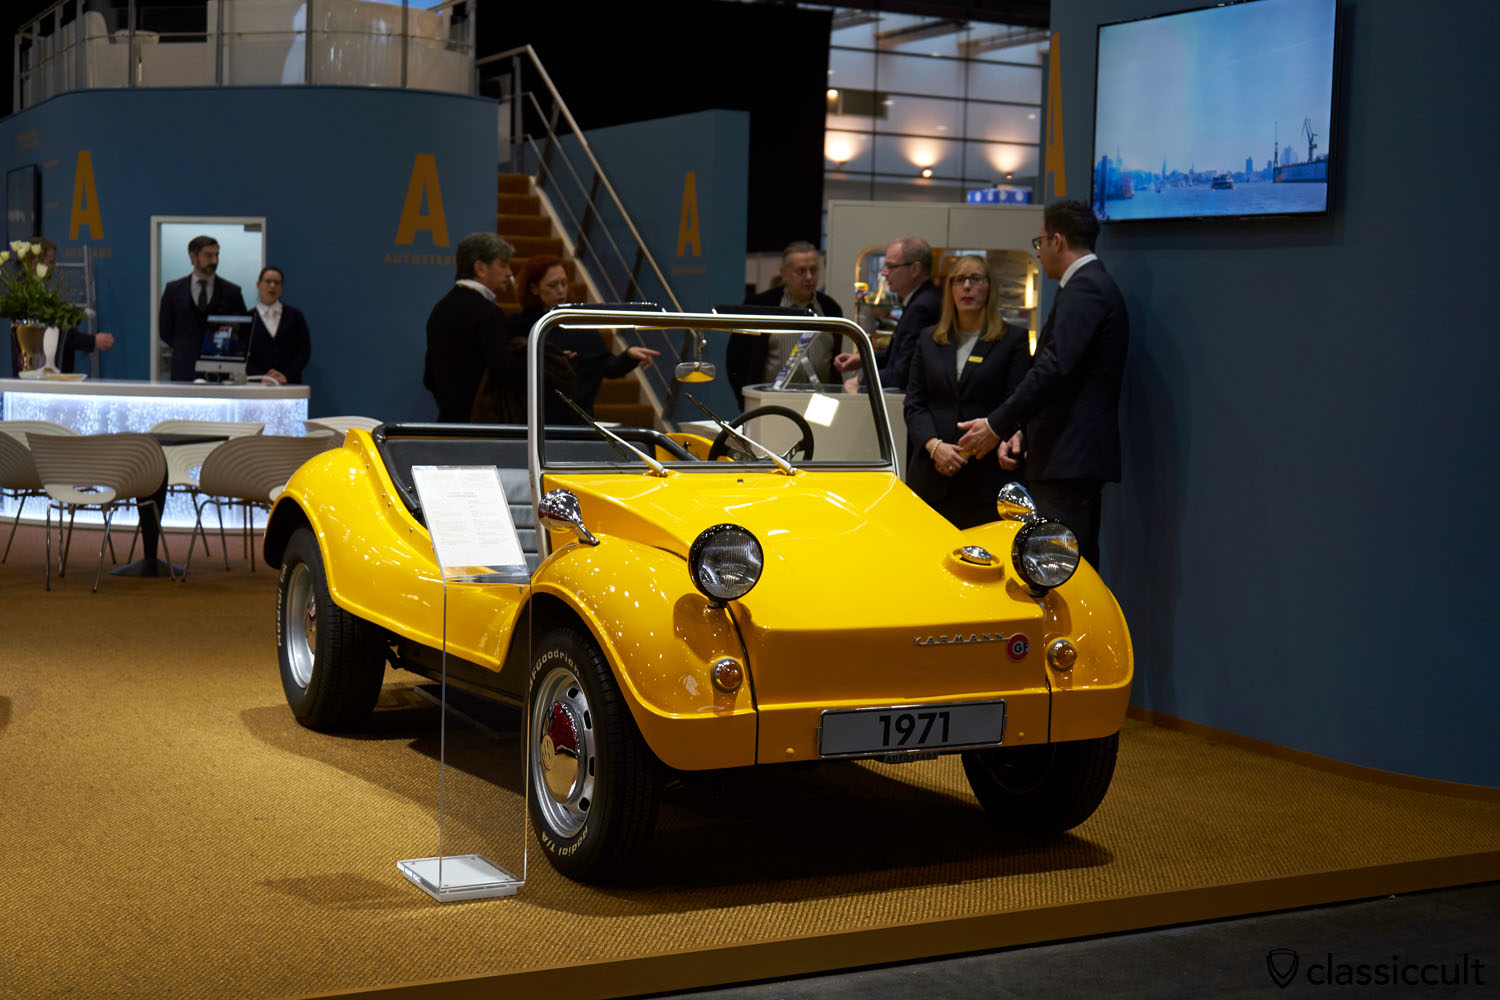 1971 Karmann GF Buggy with Talbot Berlin 333 mirrors